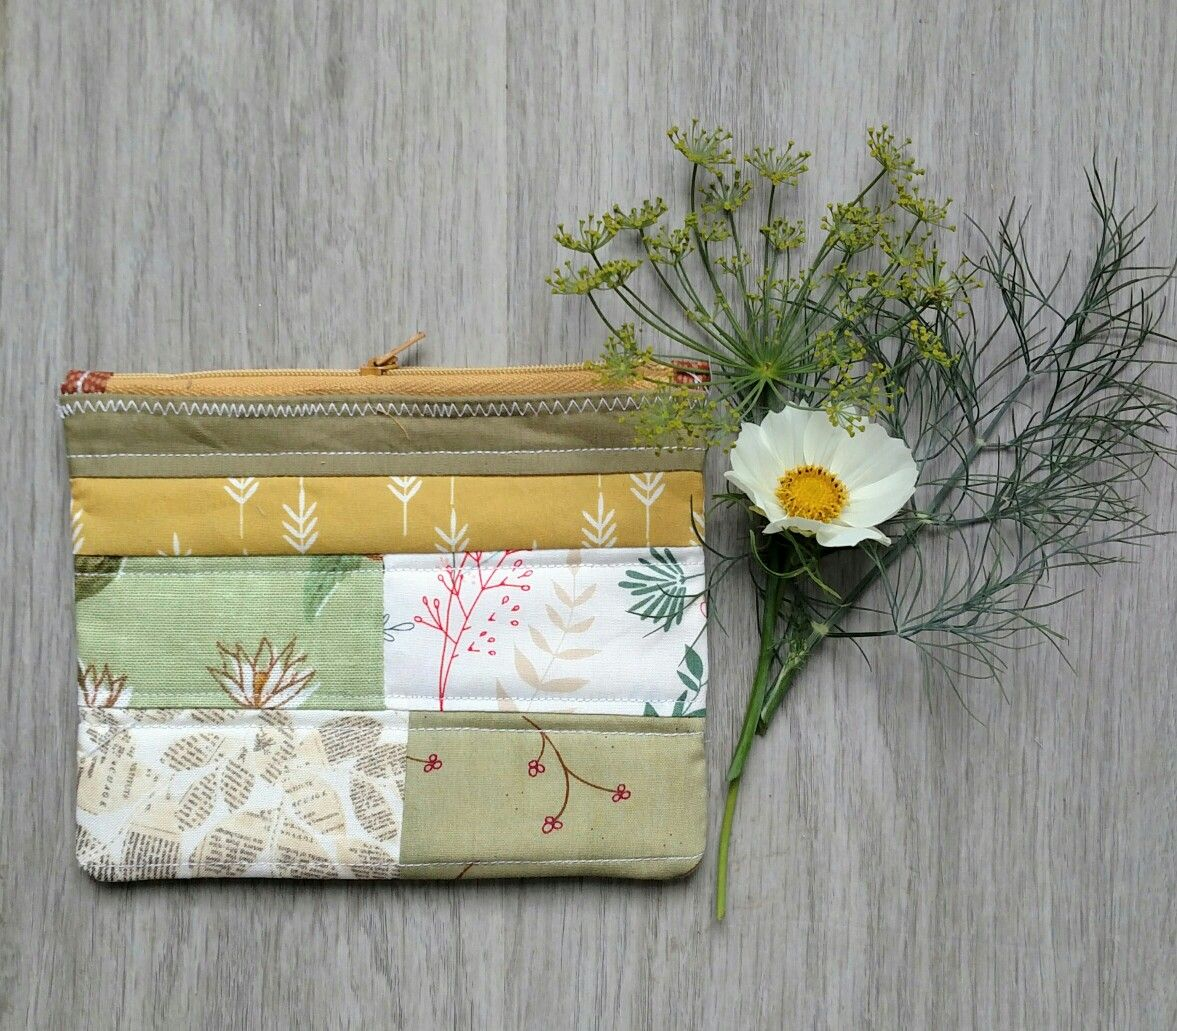 New, garden inspired dill and cosmos scrappy zipper pouch by La Rue de Fleurs. A pretty gift or great addition to your purse, with endless uses. Laruedefleurs.etsy.com